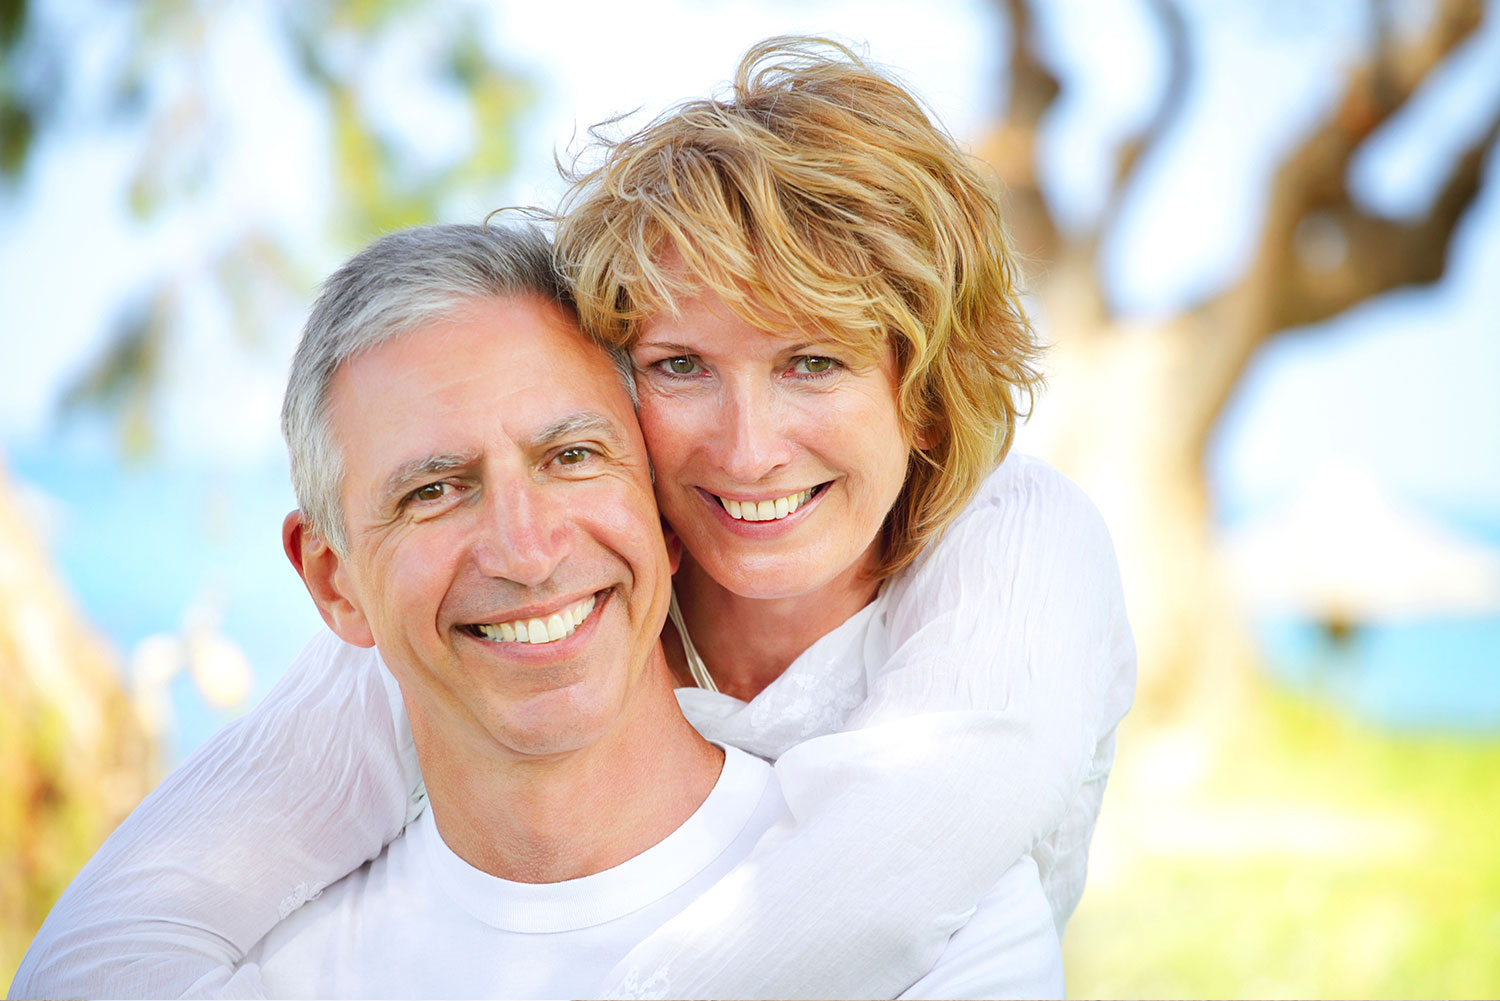 Why see a urologist? Reasons both men and women might need to see a urology specialist